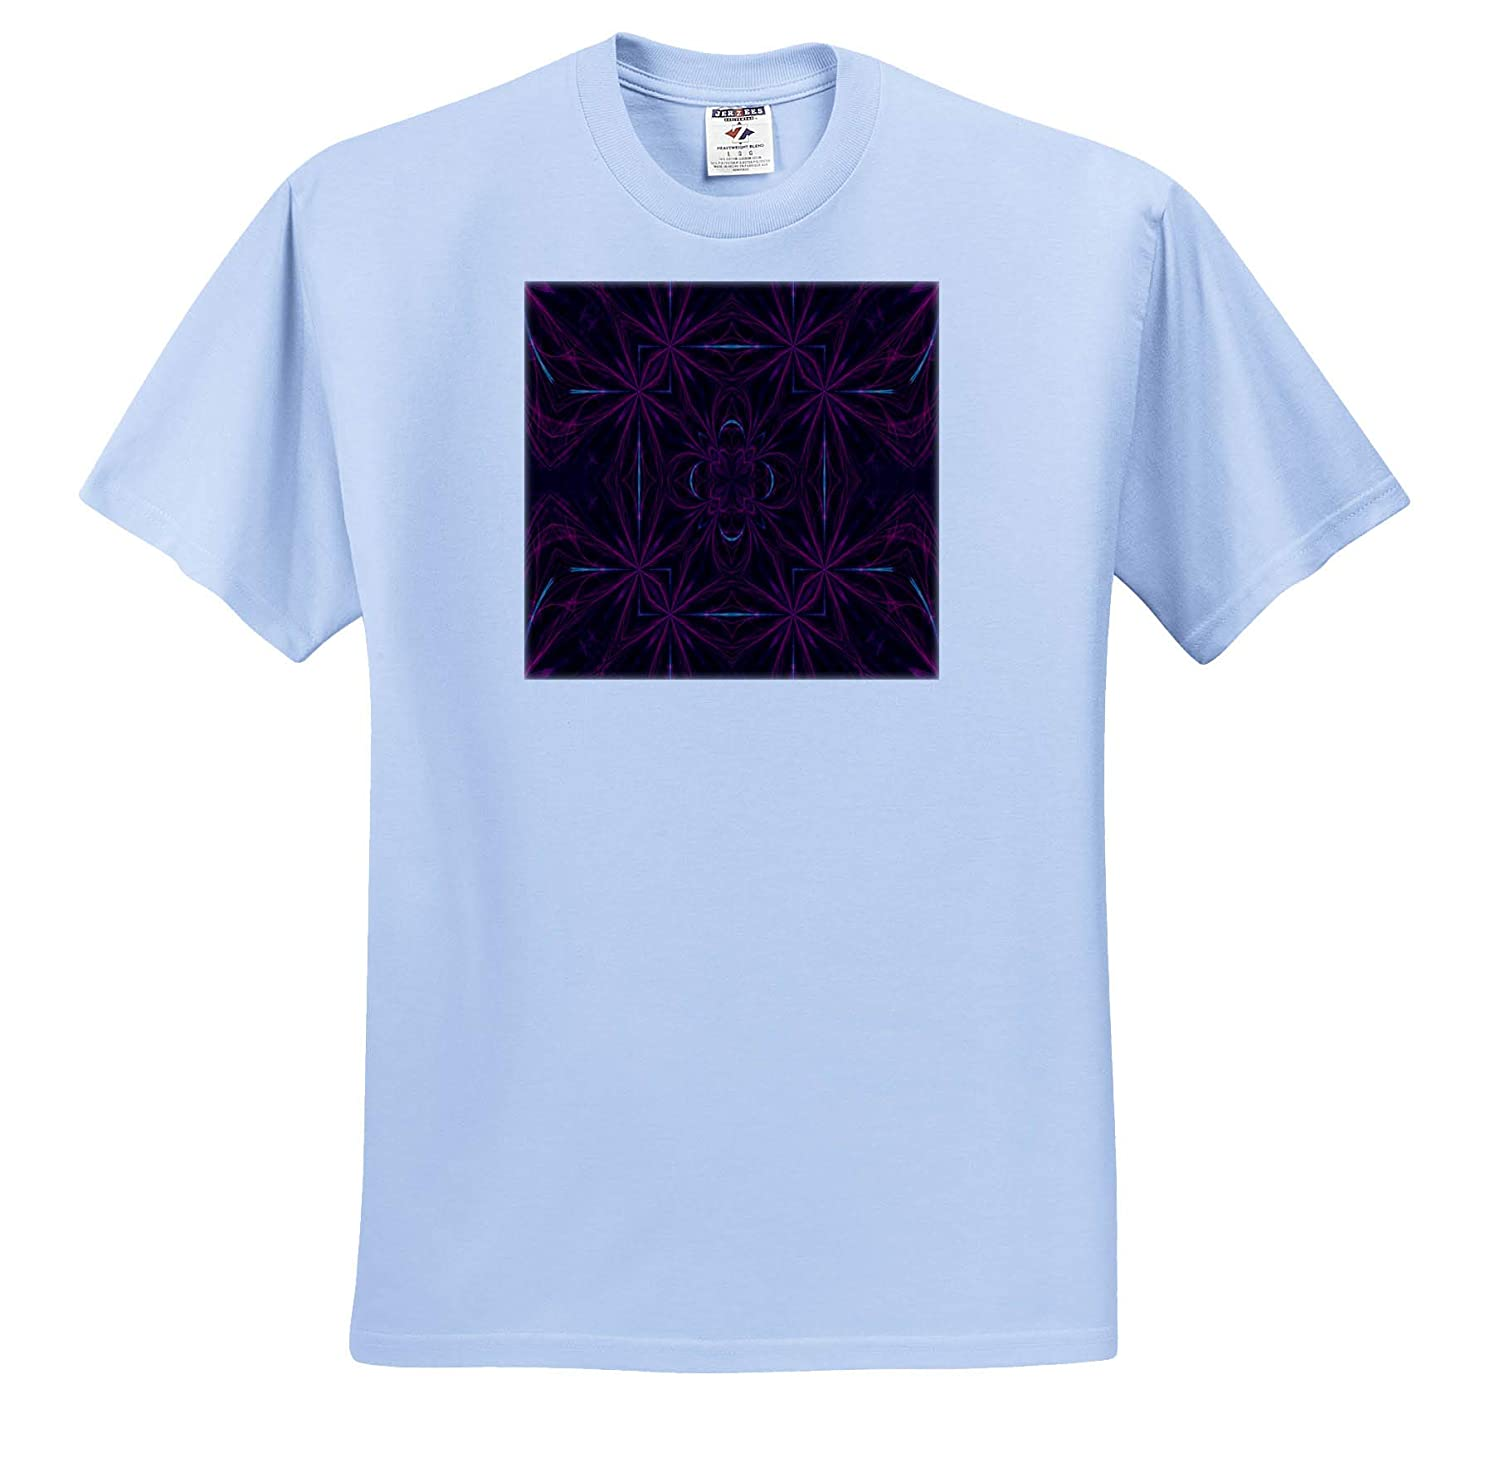 Pink and Teal Dreamscapes Design 1 3dRose Dreamscapes by Leslie Adult T-Shirt XL Design ts/_314279